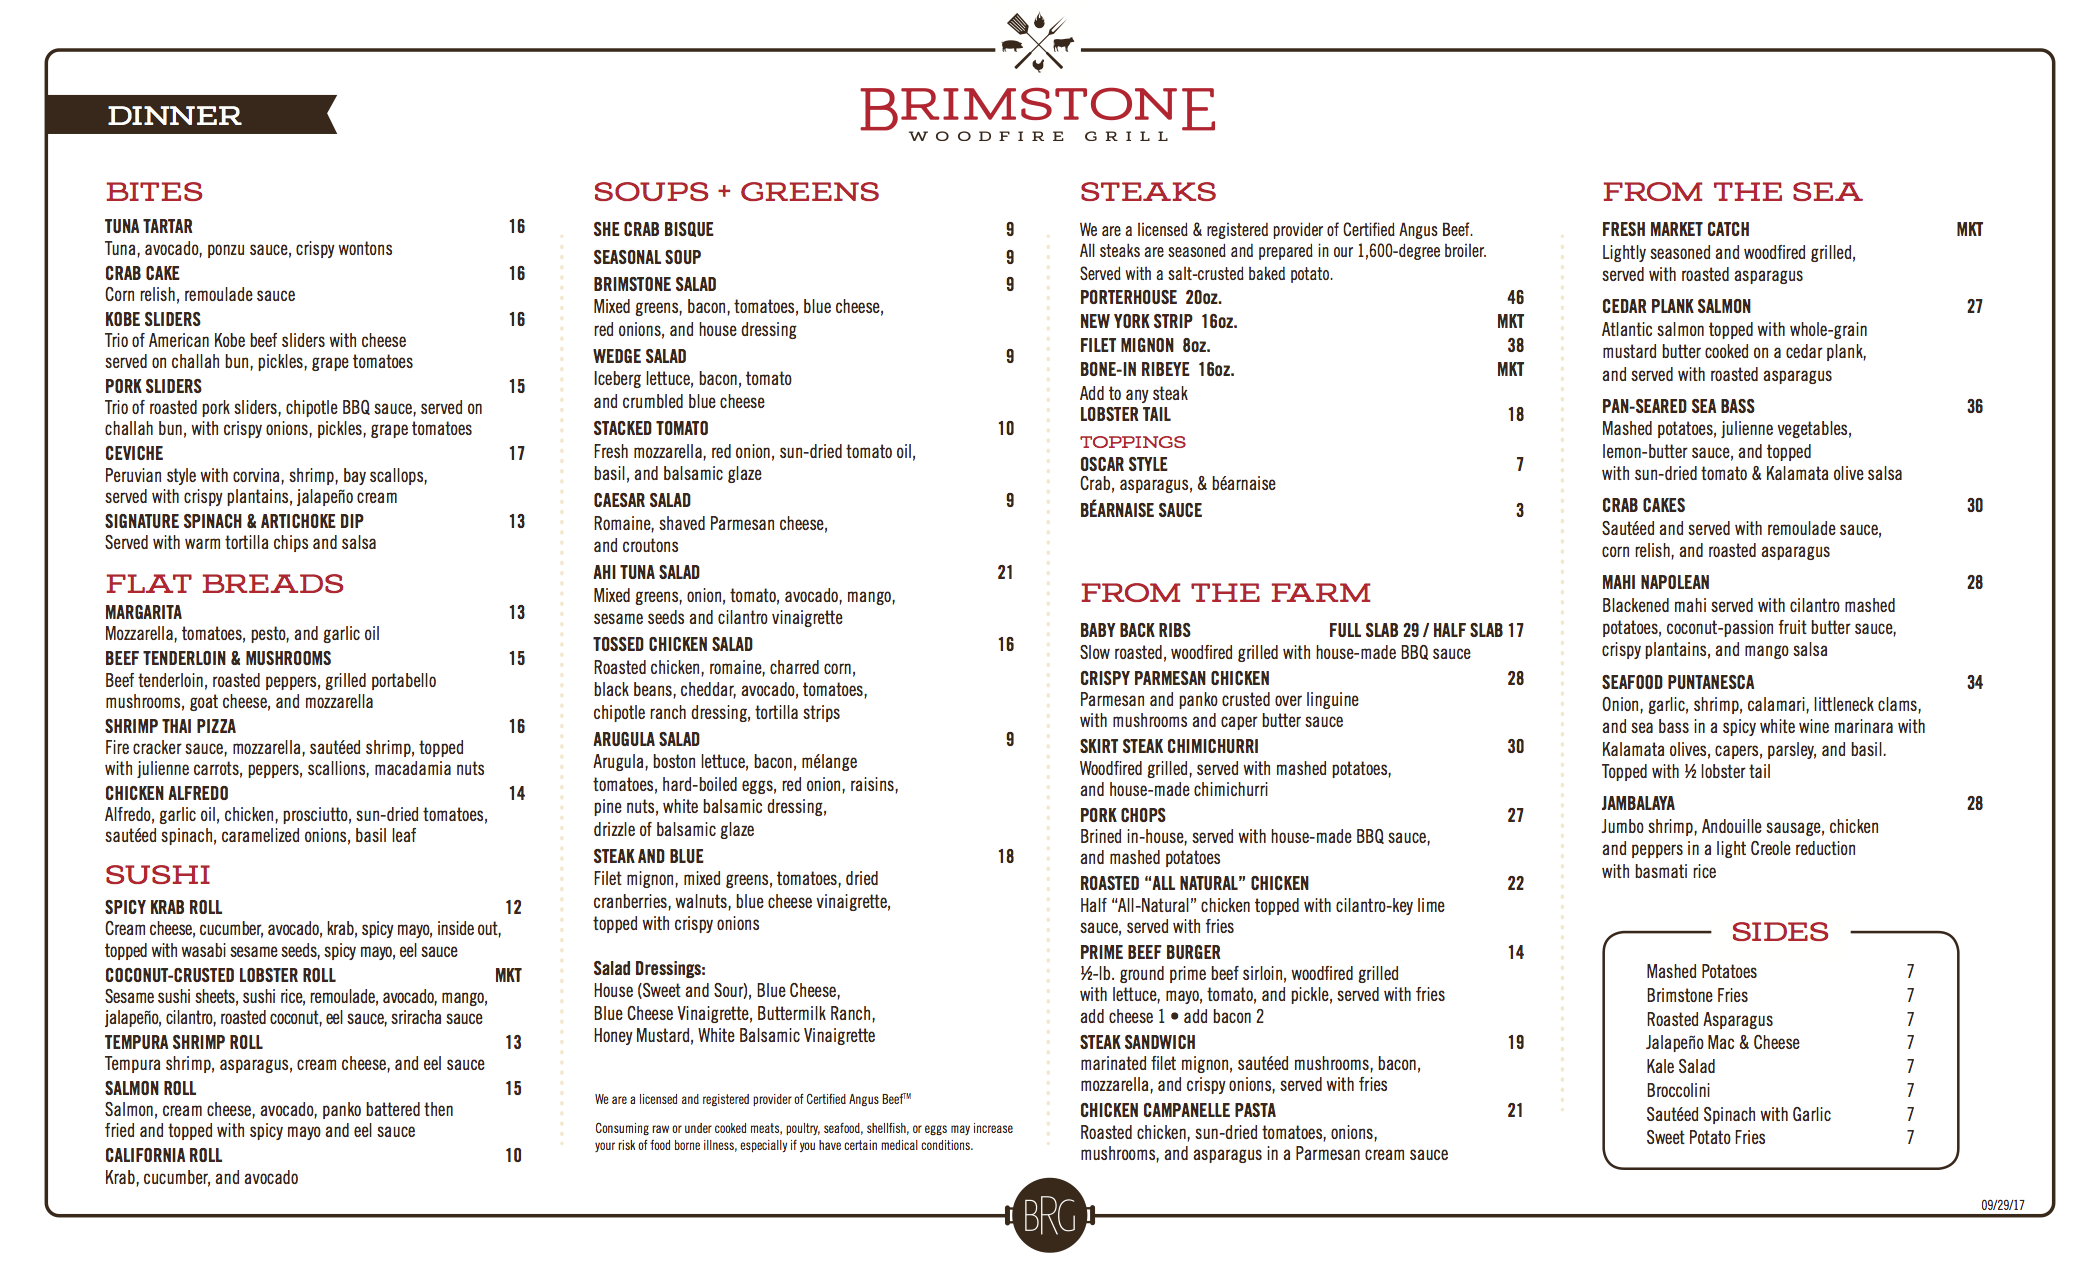 Brimstone Woodfire Grill – Pembroke Pines, Florida – Steaks, seafood ...